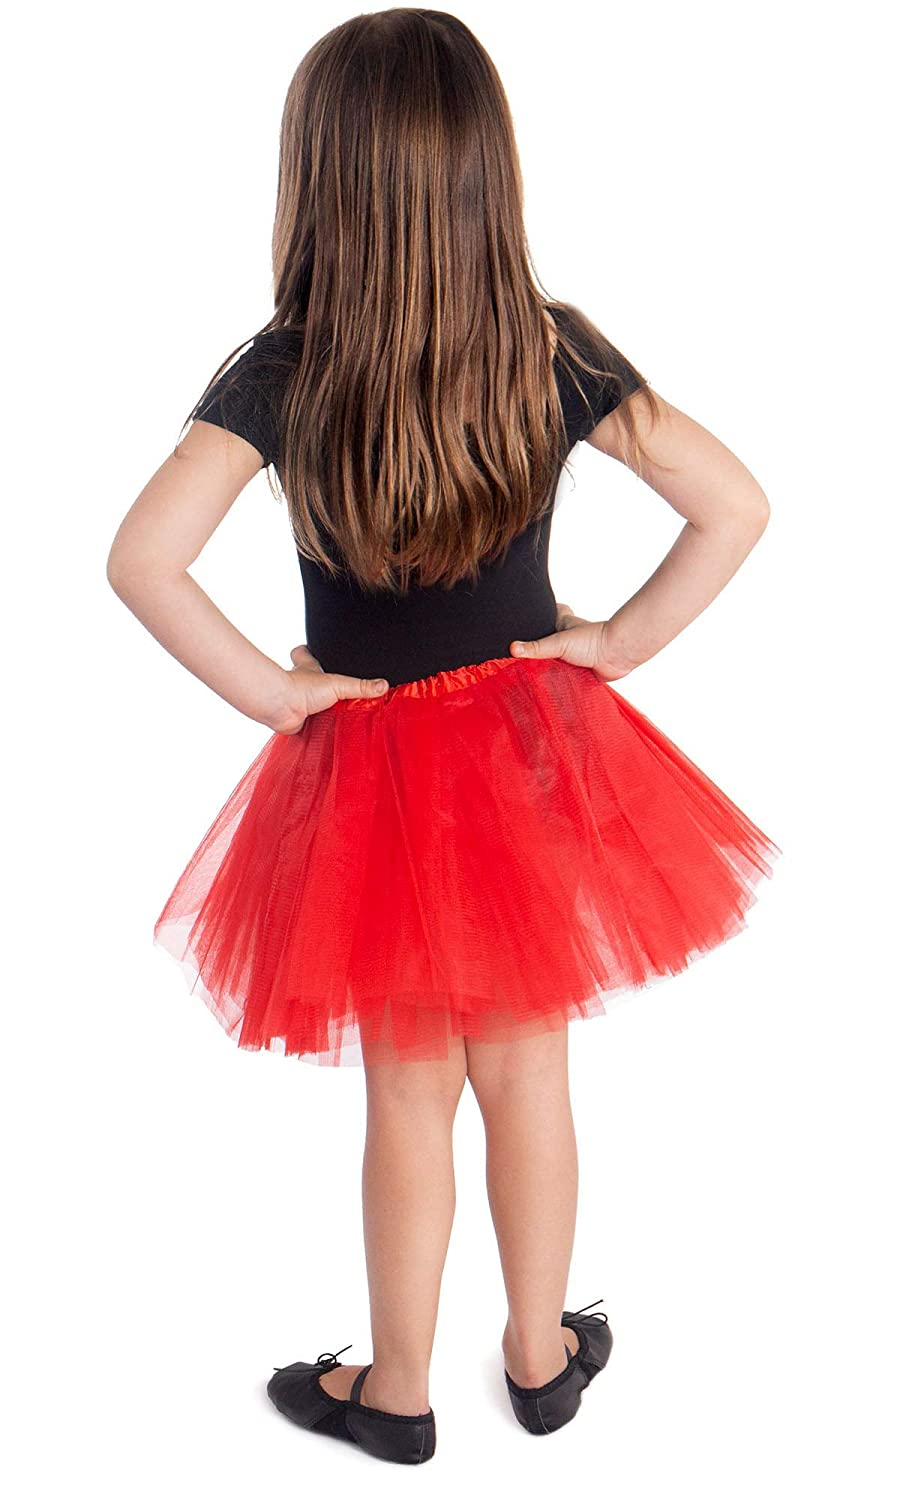 Simplicity Baby Girls Classic Layers Tulle Tutu Skirt 6 Months to 8 Years